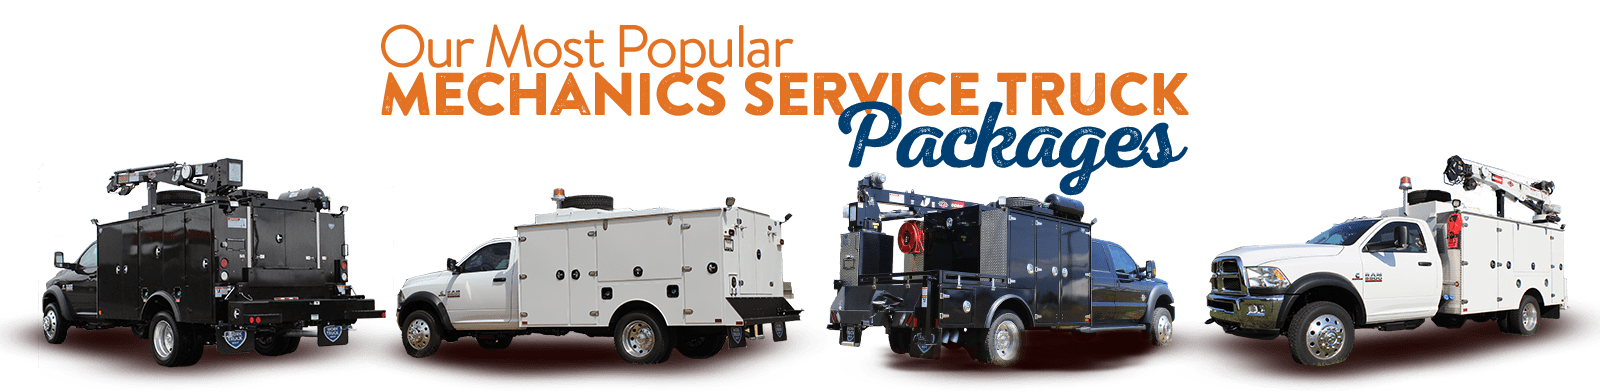 Mechanic truck bodies and mechanic service trucks